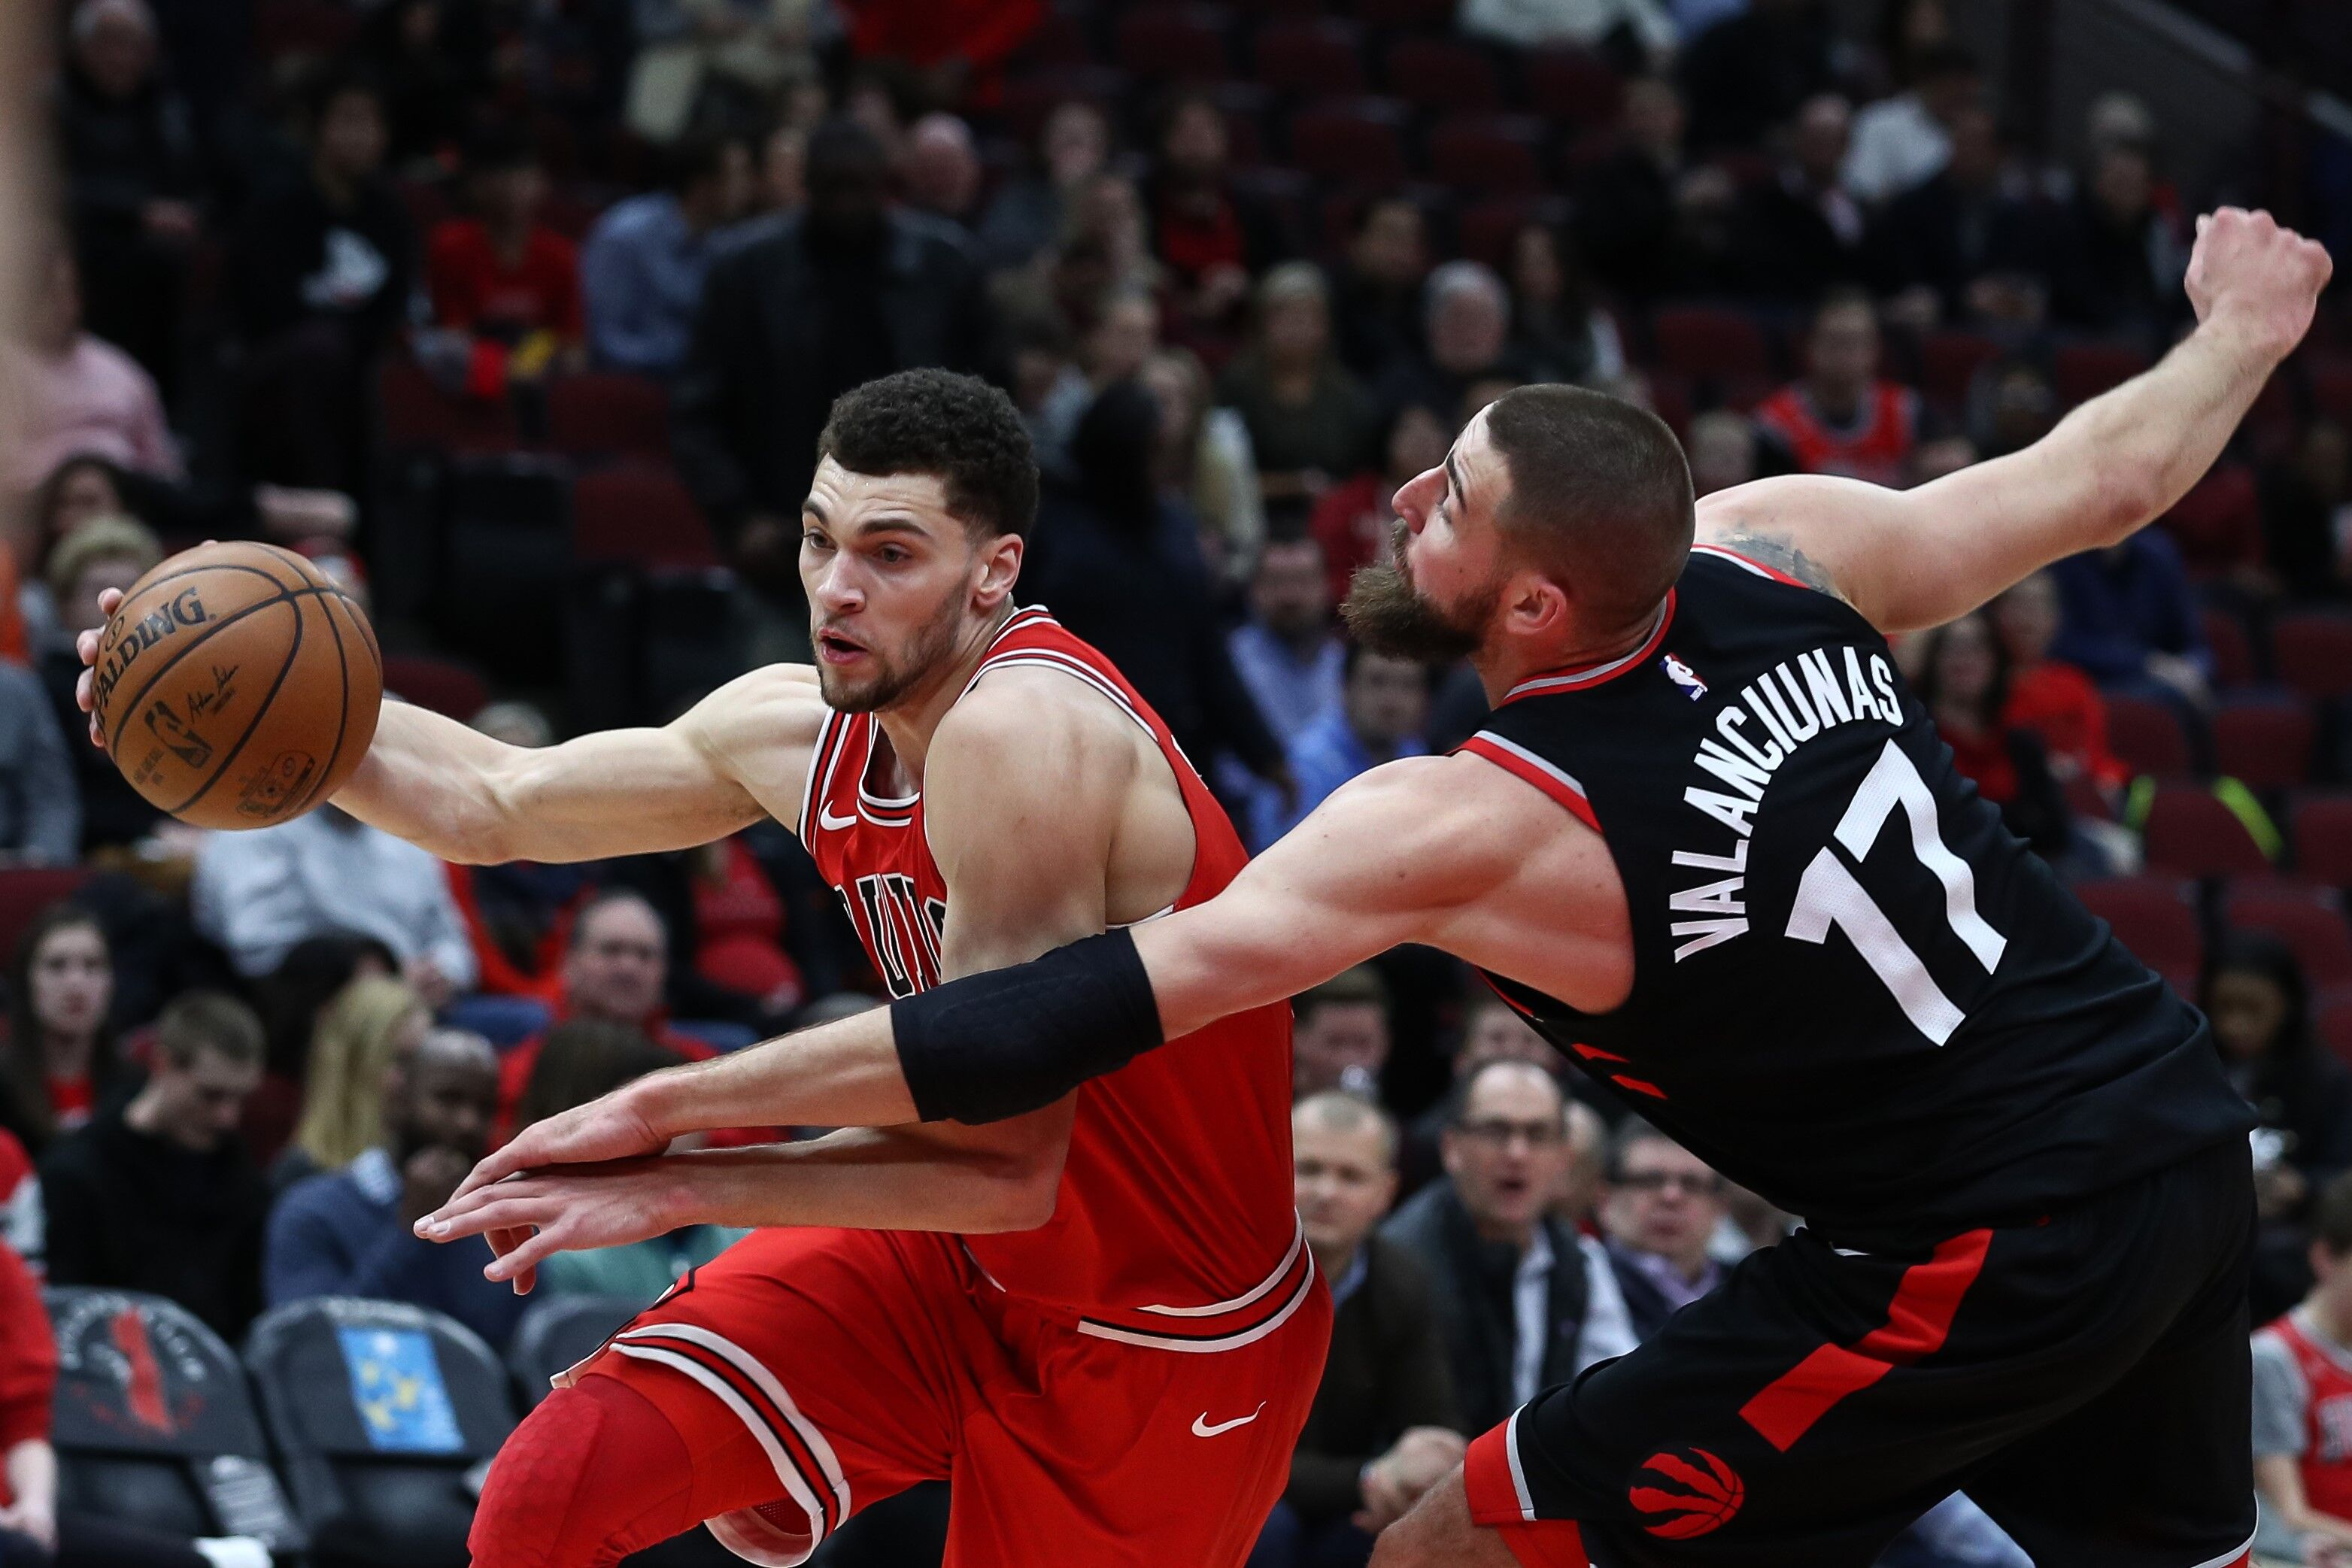 918411618-chicago-bulls-vs-toronto-raptors-nba.jpg